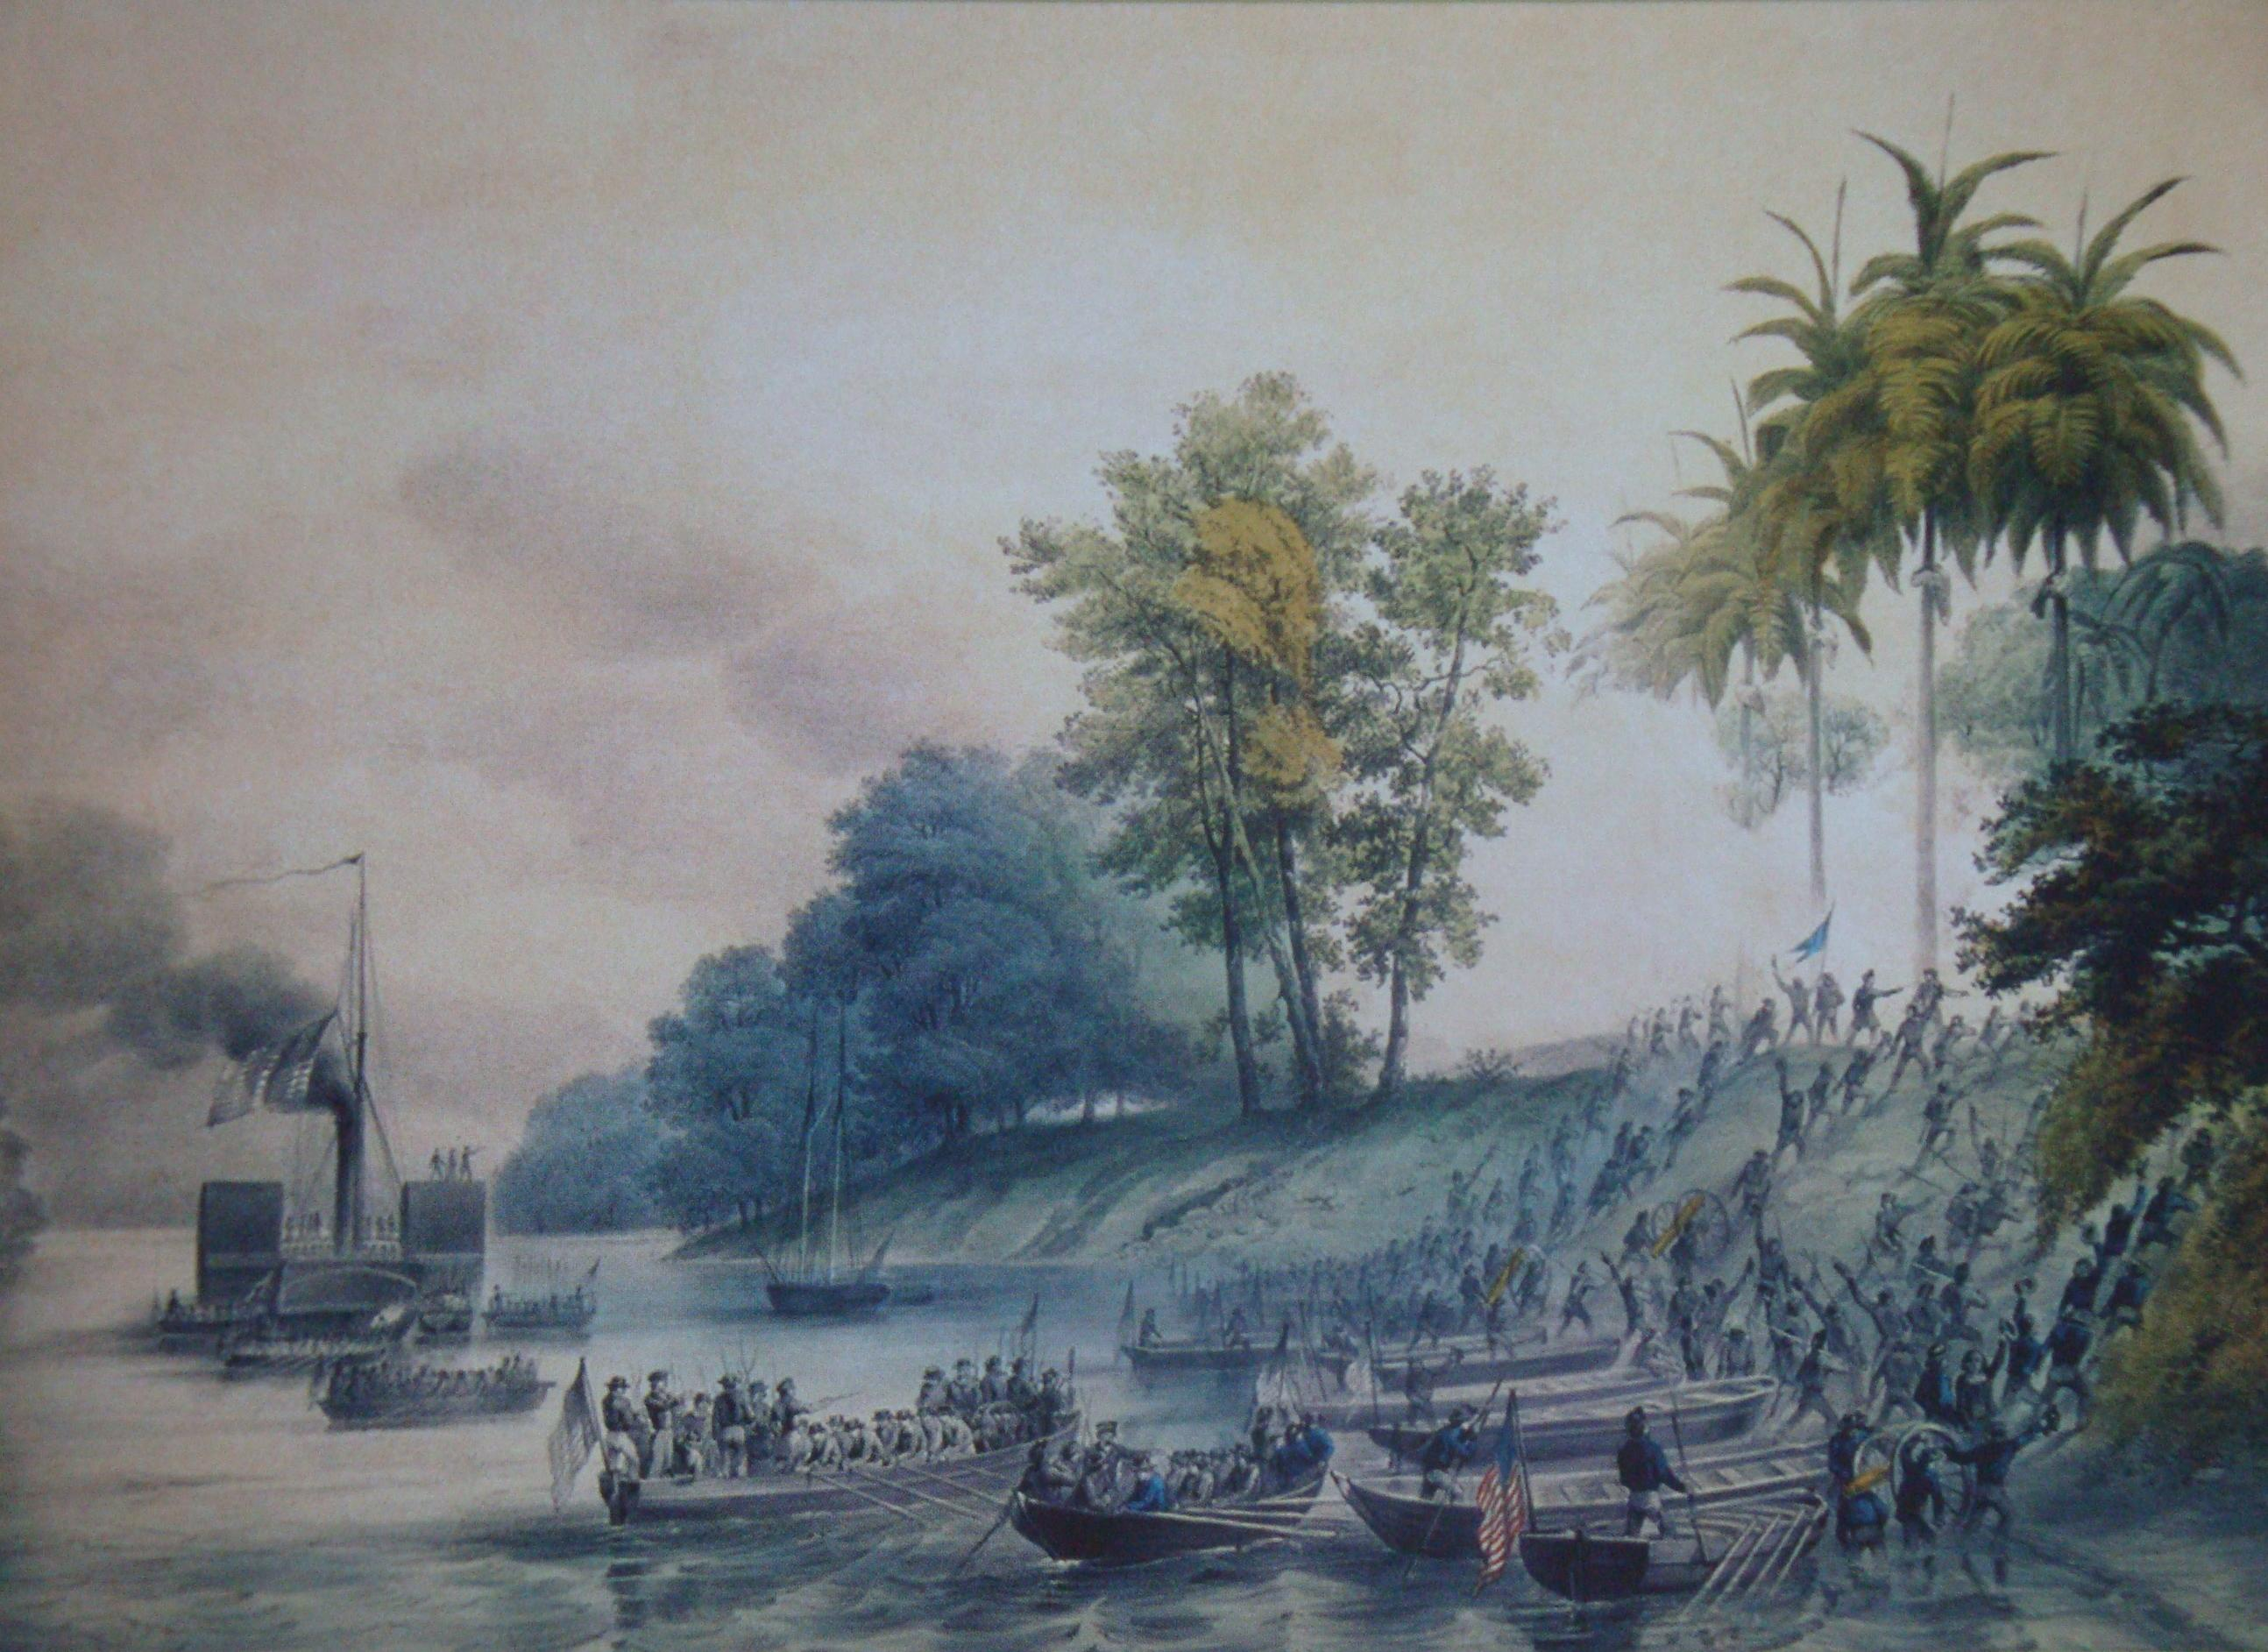 Perry attacked and took San Juan Bautista (Villahermosa today) in the Second Battle of Tabasco. Disembarkation in San Juan Bautista, capital of the Mexican state of Tabasco, during the American intervention developed between 1846 and 1847. On October 25 and 26, 1846, the First Battle of Tabasco took place, in which the Tabasco forces were victorious. On June 16, 1847 the Second Battle of Tabasco was unleashed, with the Americans coming out victorious, occupying the state capital. Finally the invaders were expelled from the state on July 22, 1847.